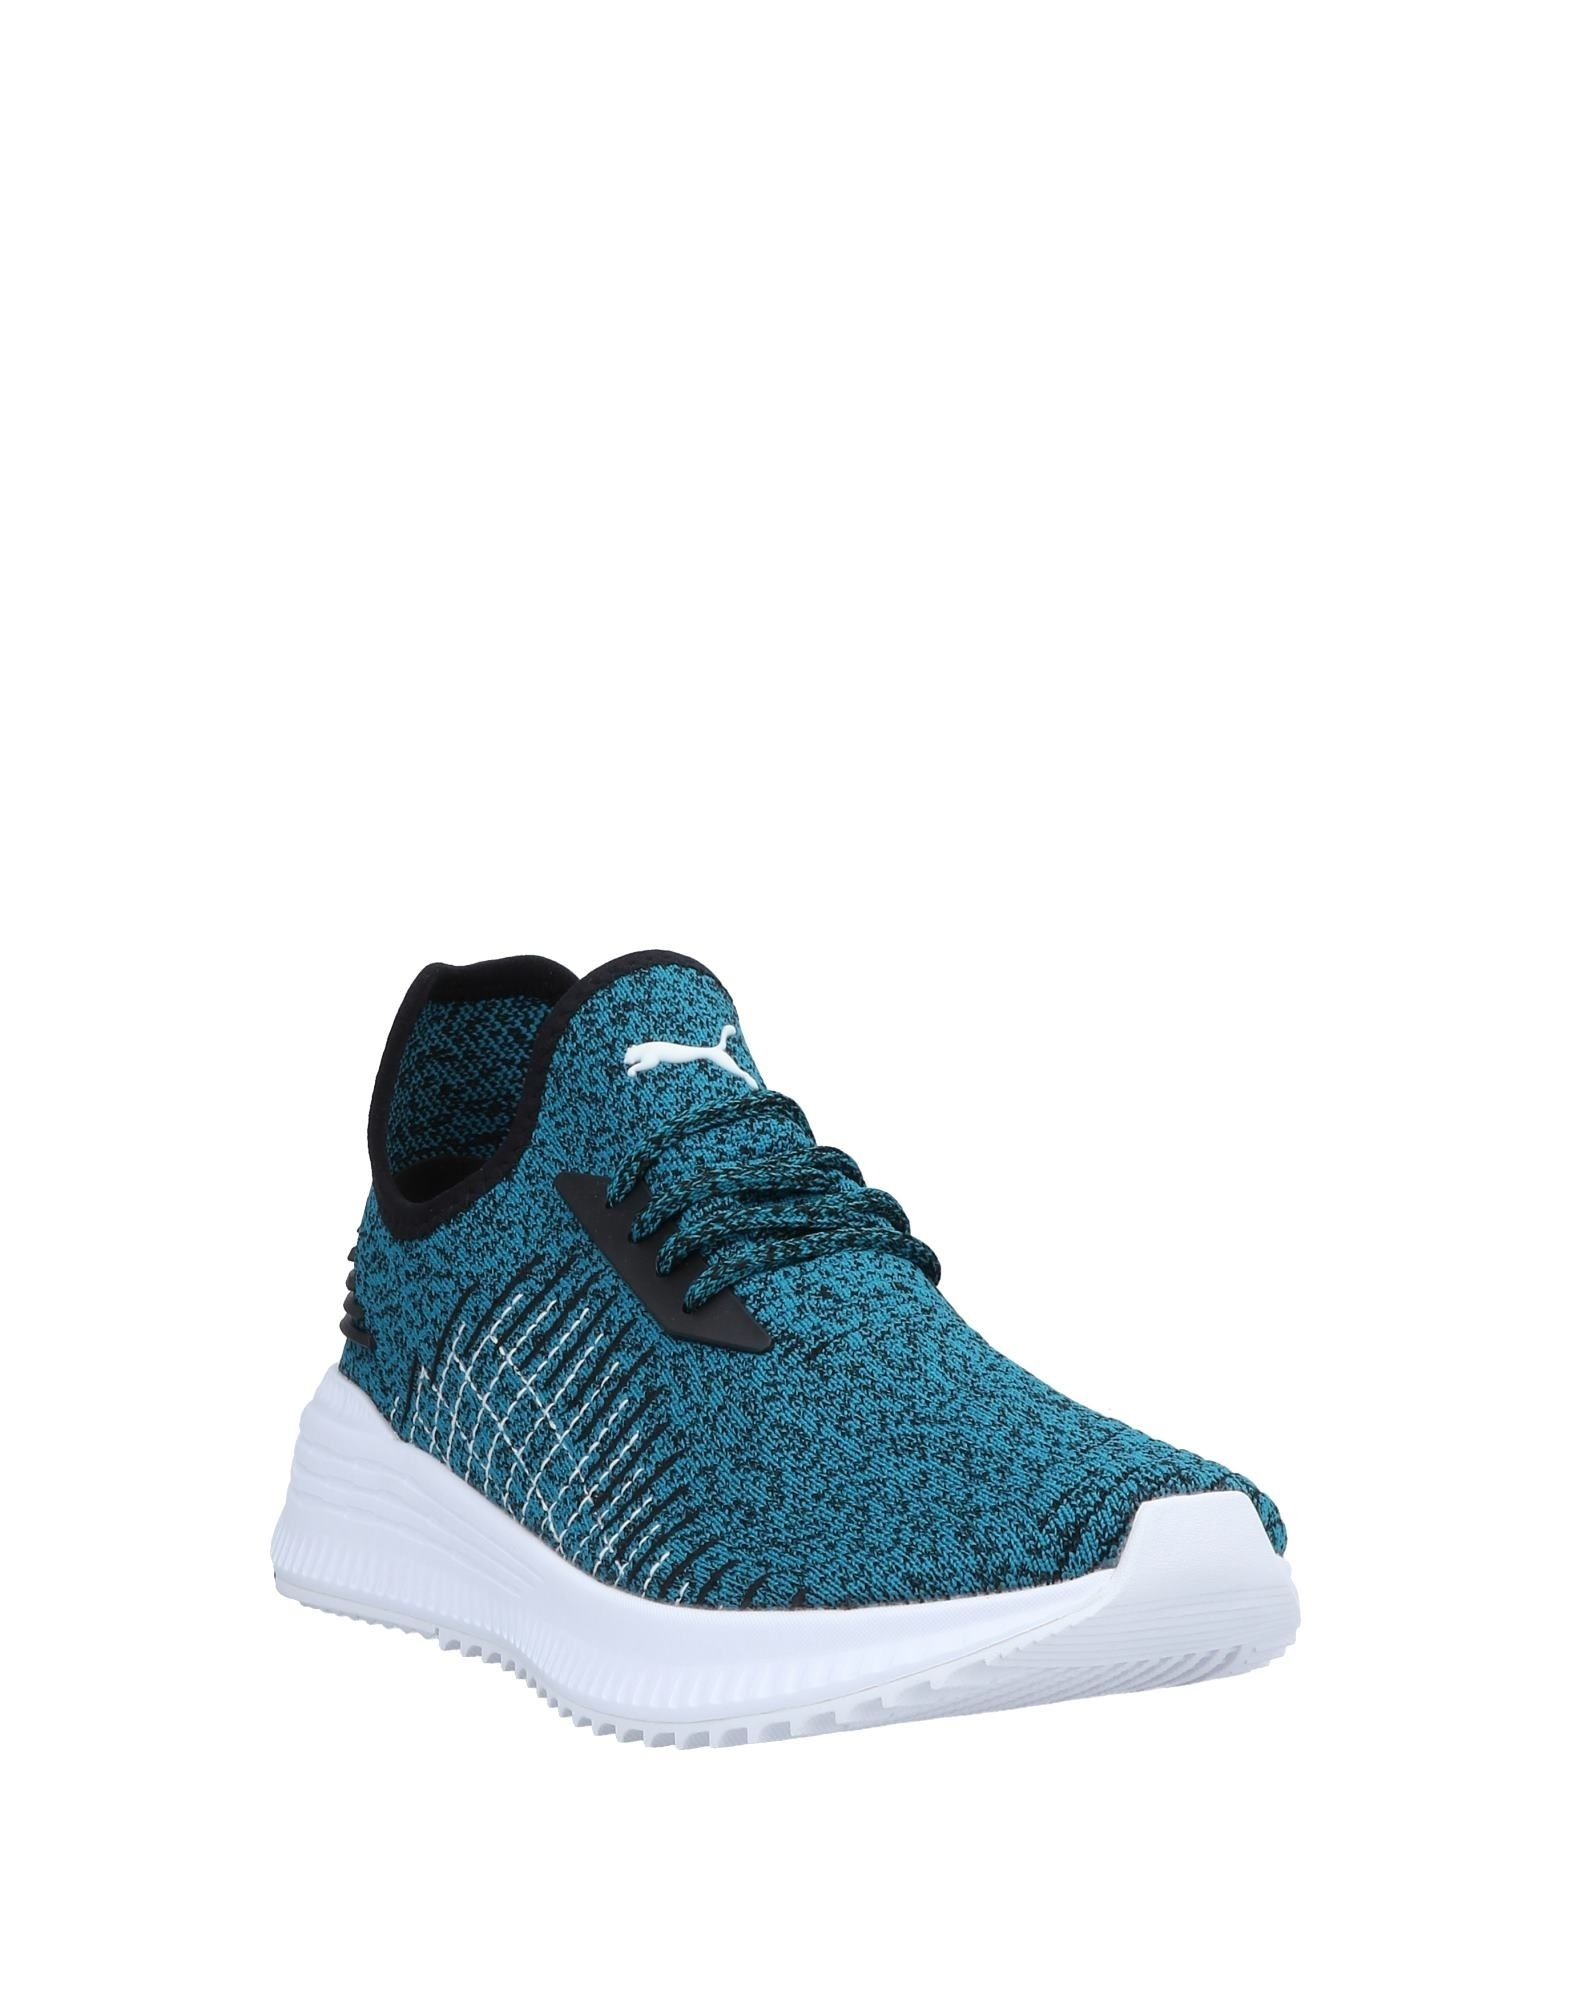 Puma Sneakers - Men Puma Sneakers online on    United Kingdom - 11559243ND 180c62